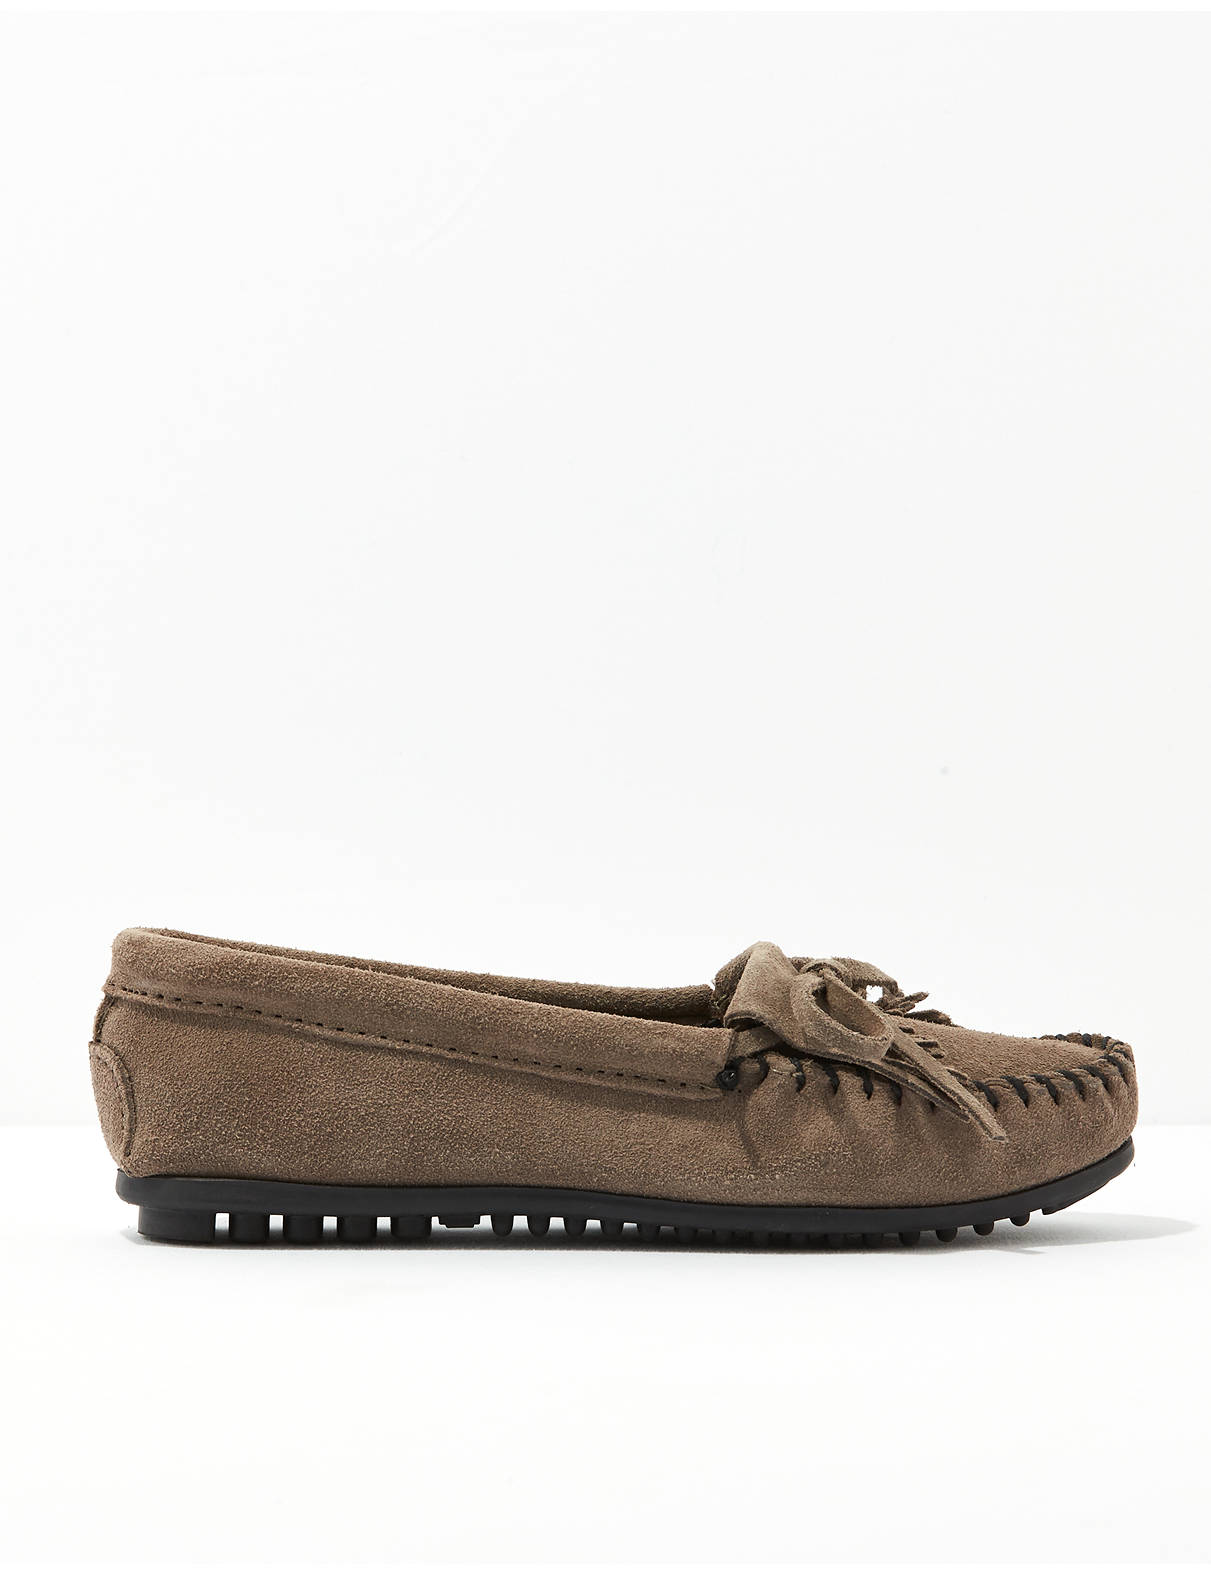 Display product reviews for Minnetonka Kilty Suede Moccasin